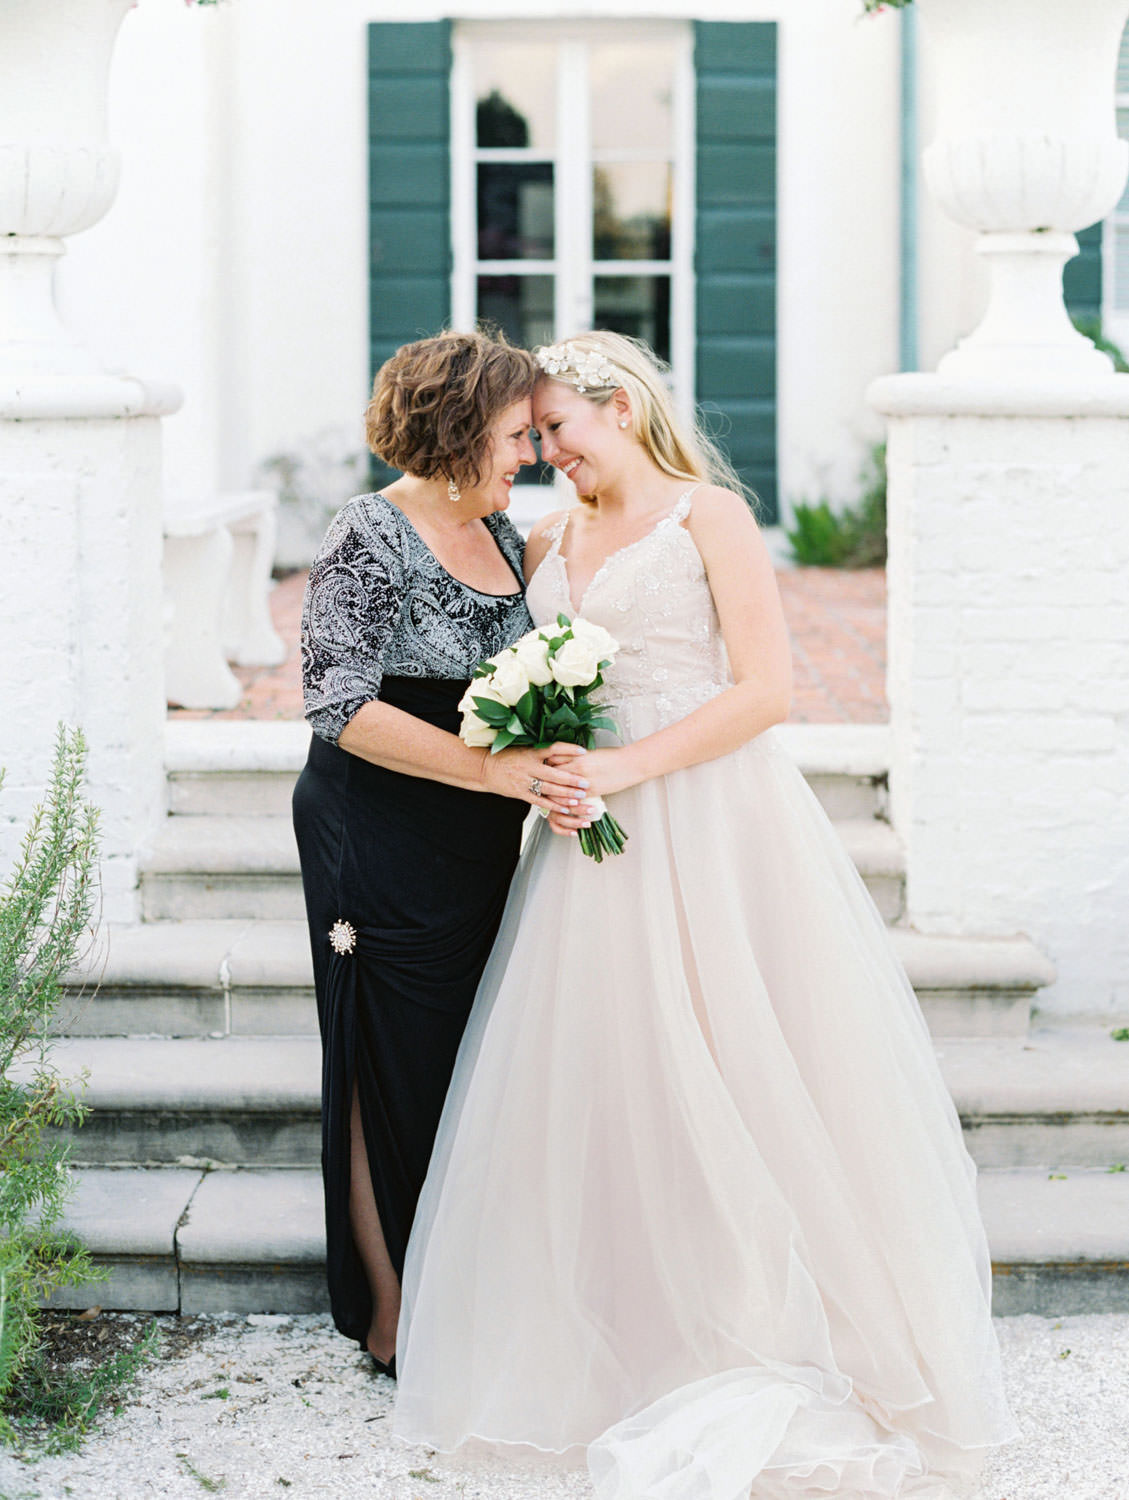 Bride in a champagne gown with a floral tiara headband with her mother. Film photography at Jekyll Island Club Resort Wedding by Cavin Elizabeth Photography